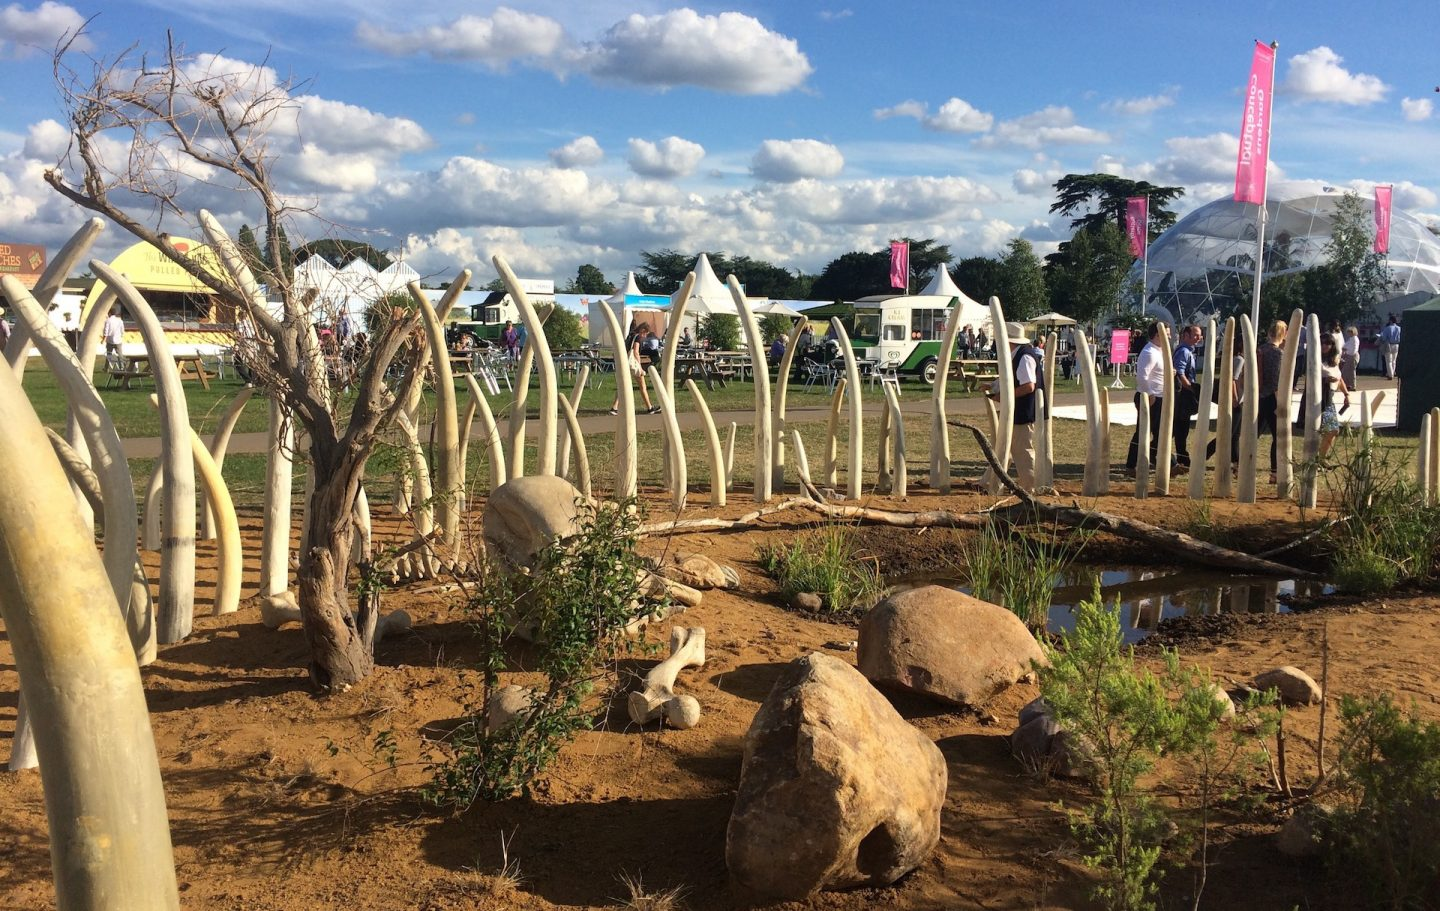 Tusk Garden Turns Heads at Hampton Court Flower Show